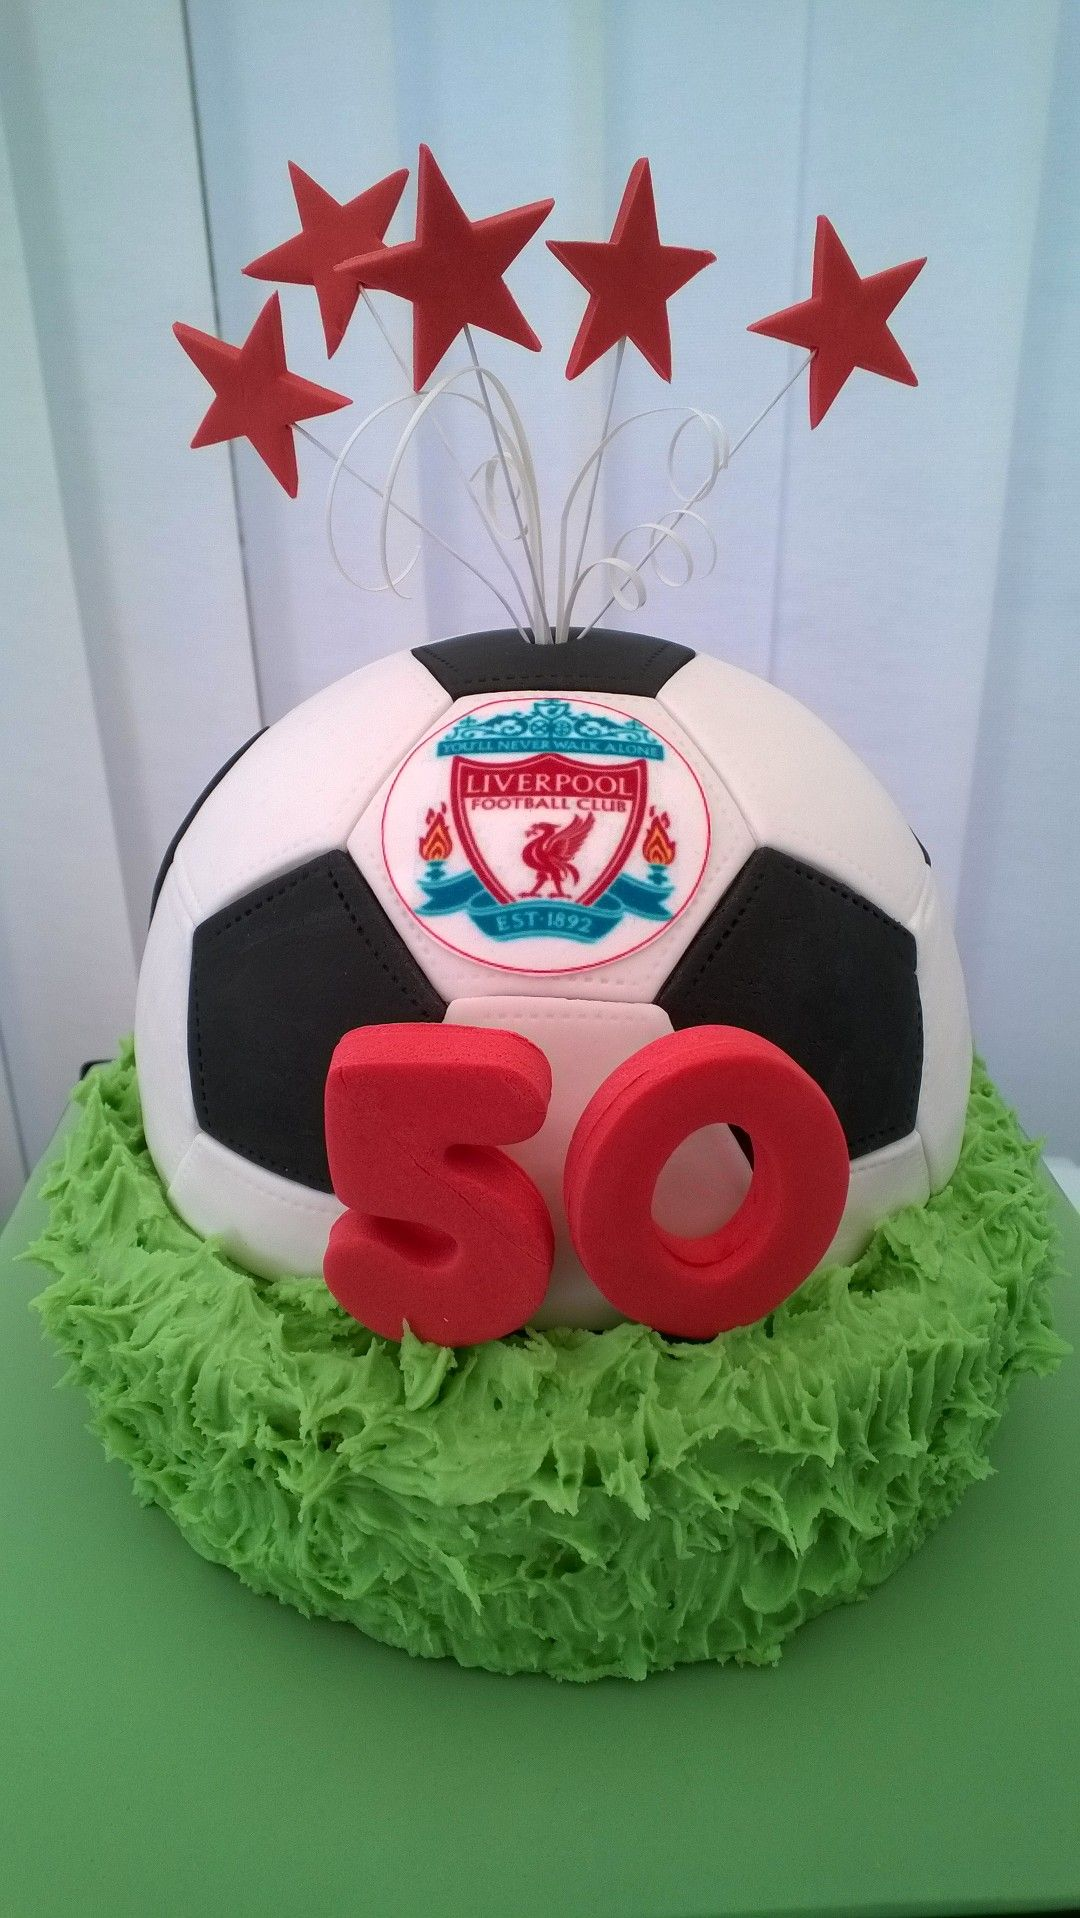 Liverpool 50th football cake 50th birthday cake